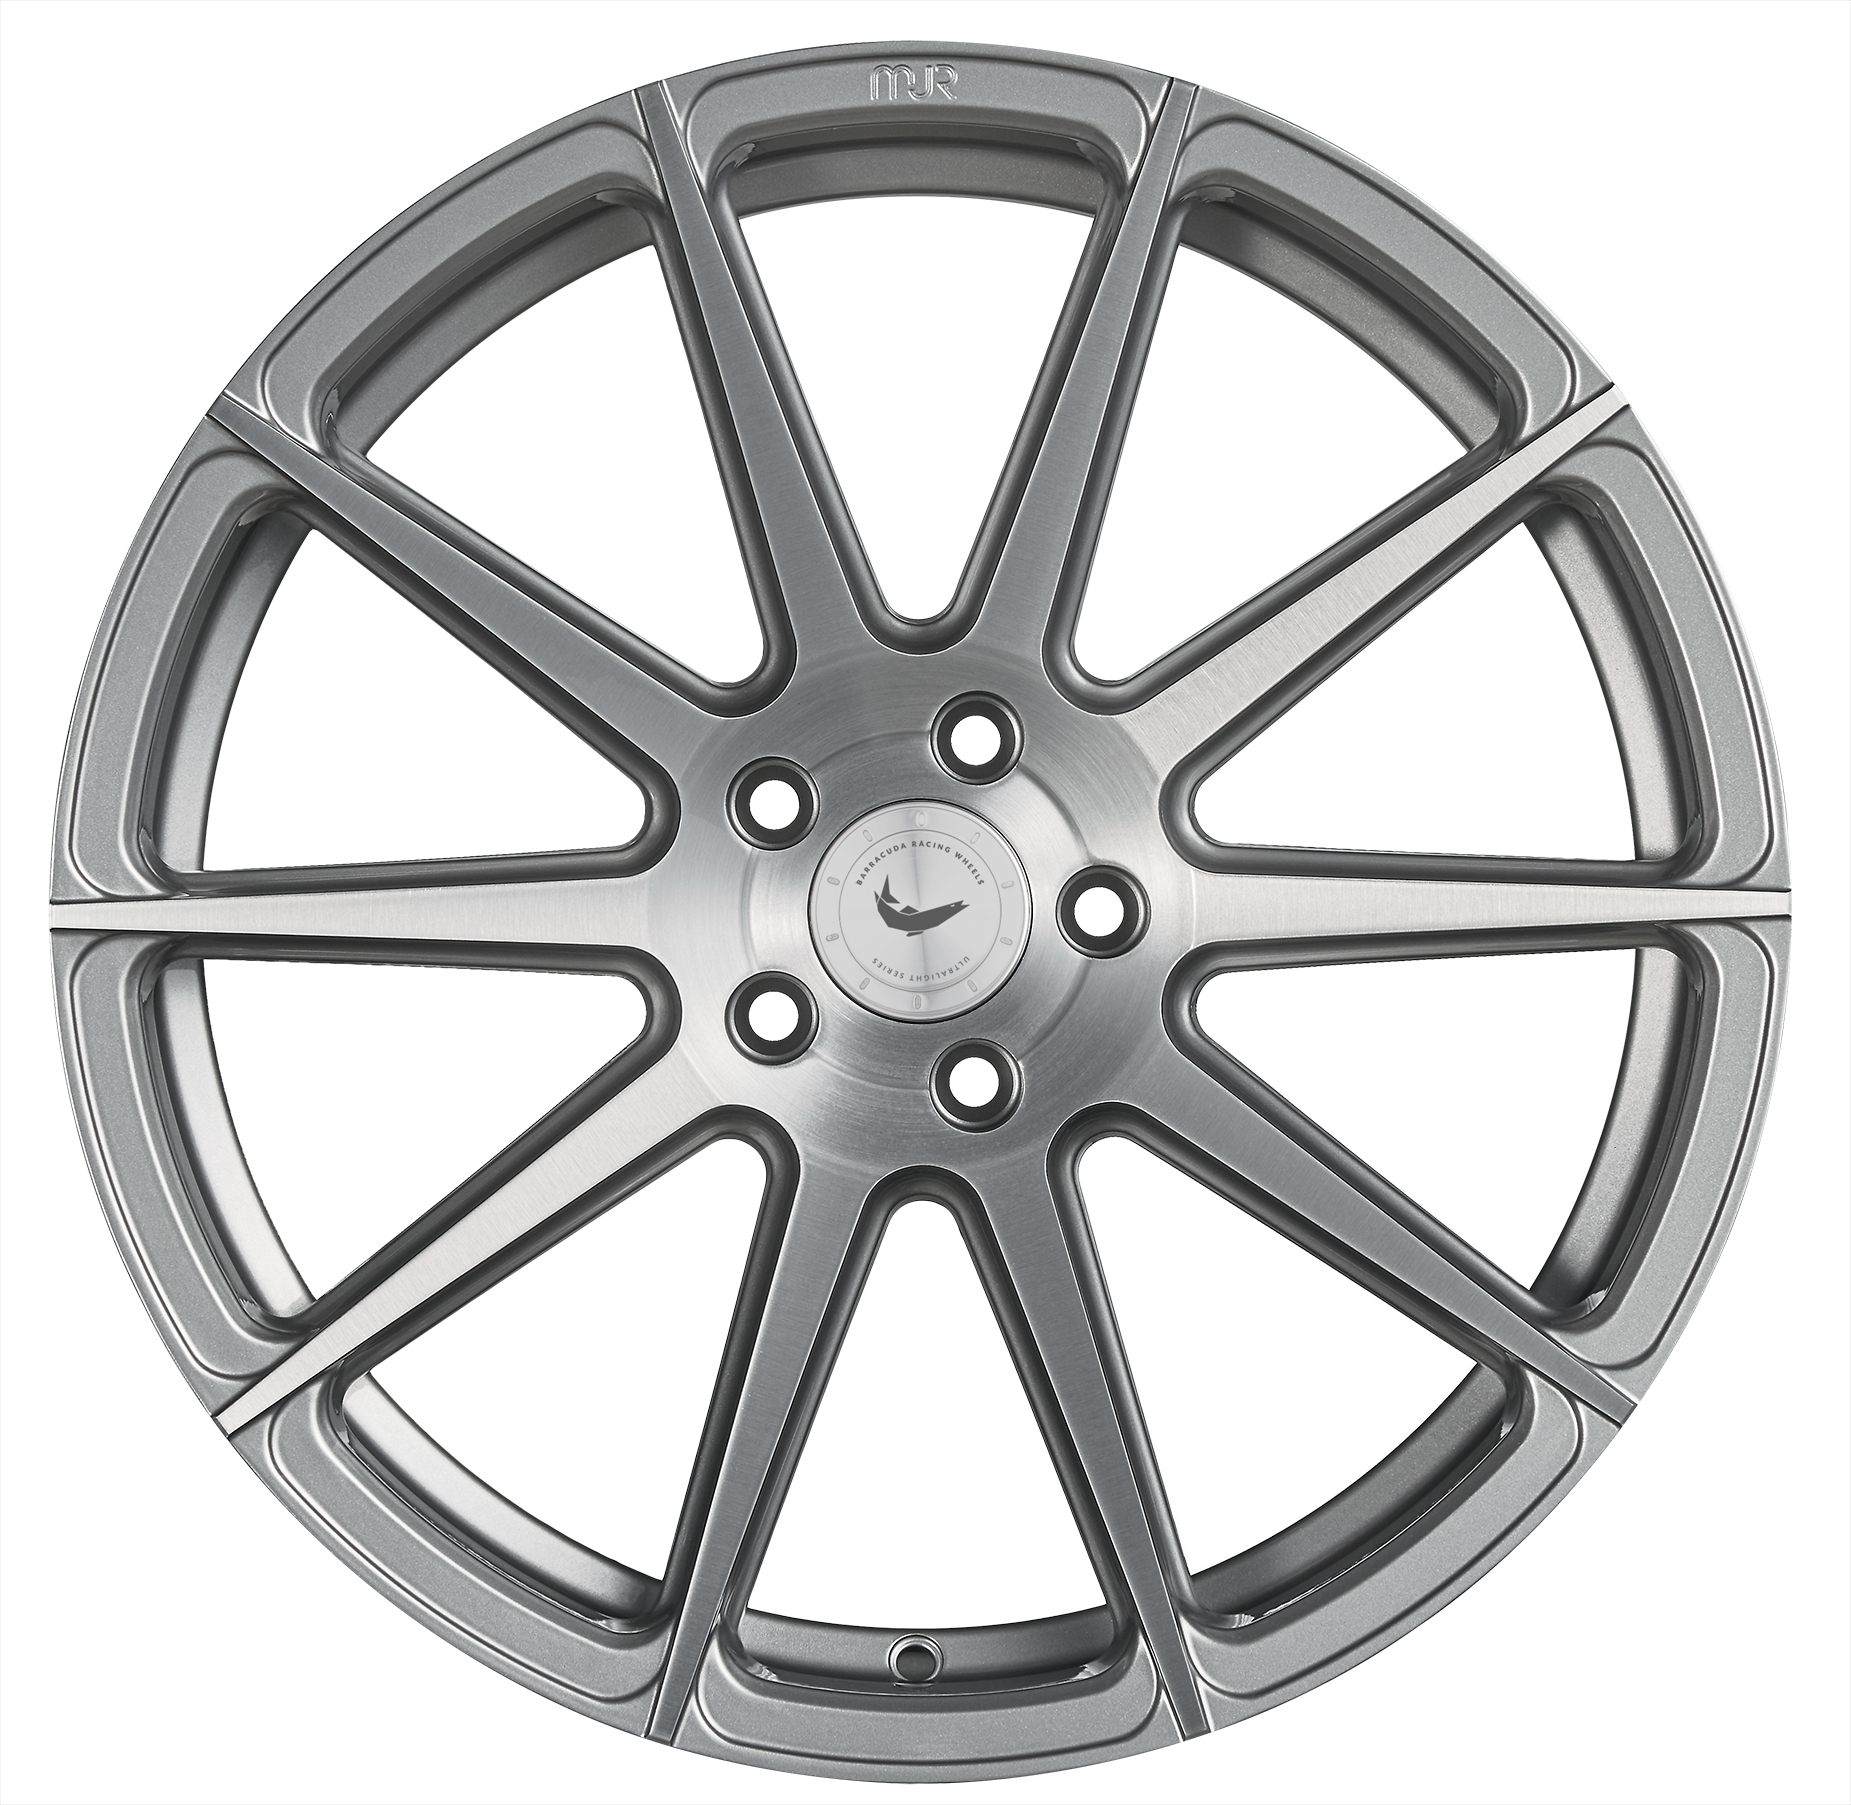 BARRACUDA PROJECT 2.0 Silver brushed - 9x20 / 5x112 / ET25, RHPRO290035R/SBS12124